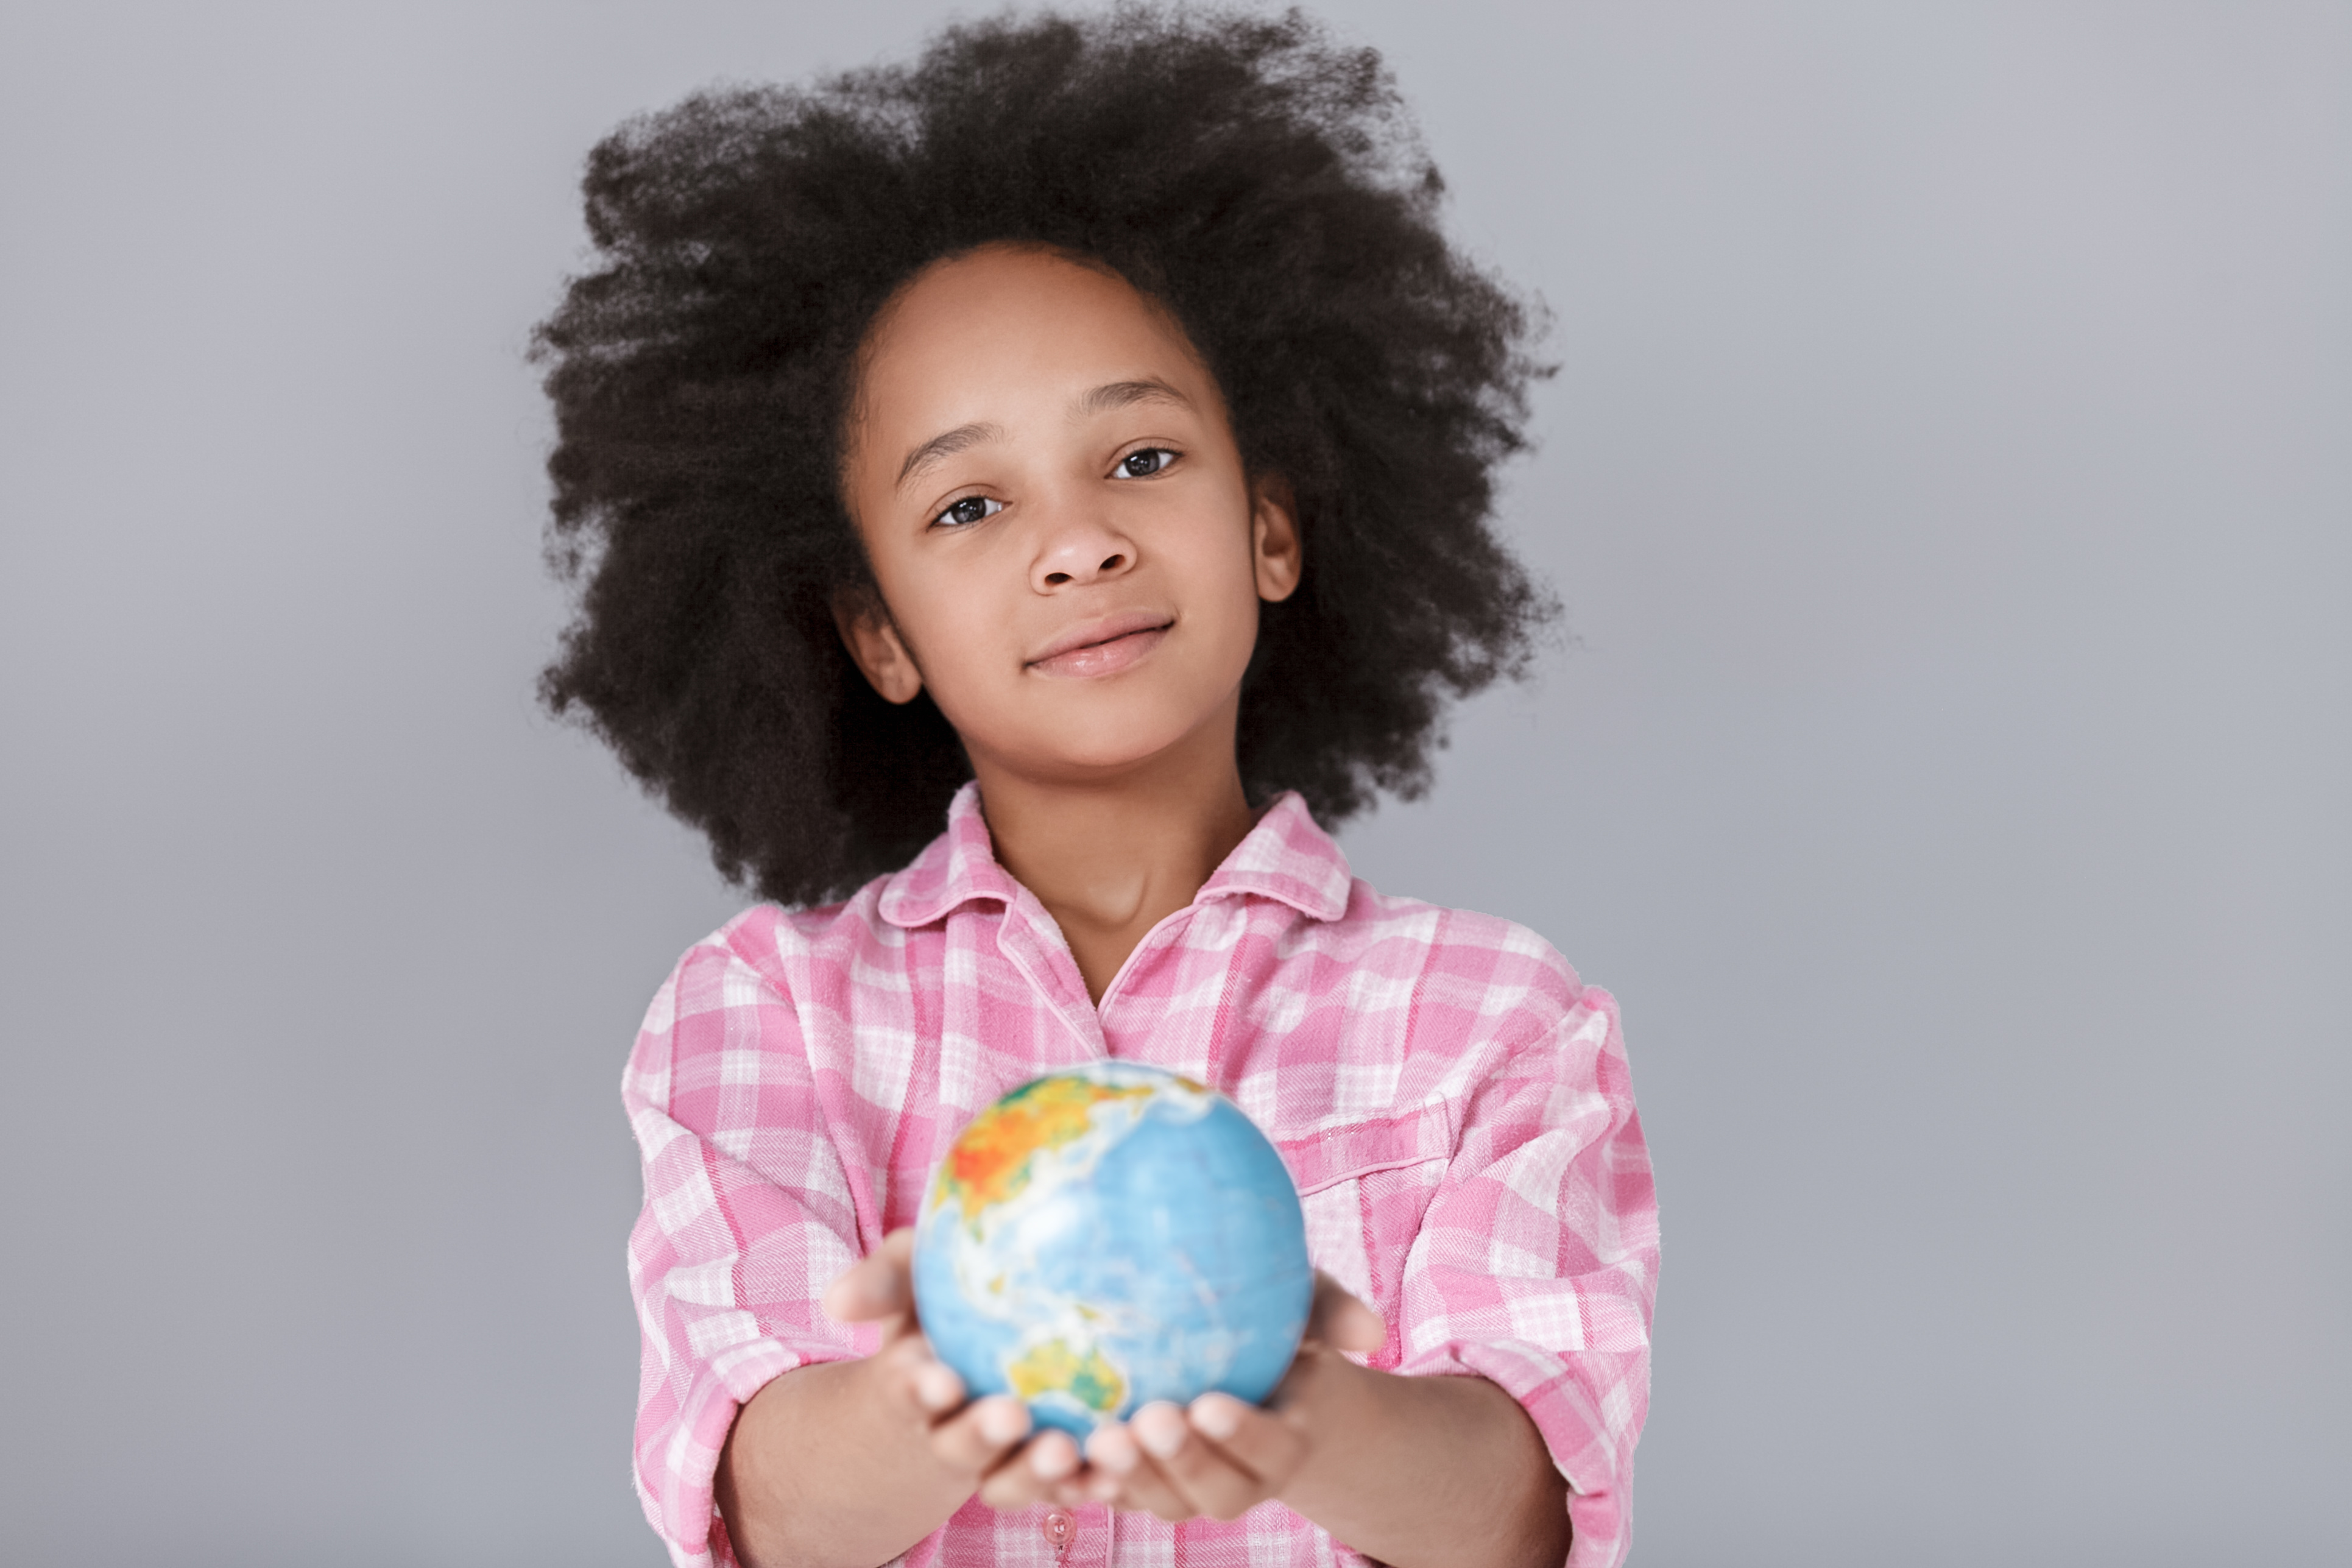 World in my hands! Cheerful little mulatto girl holding a globe while standing against grey background